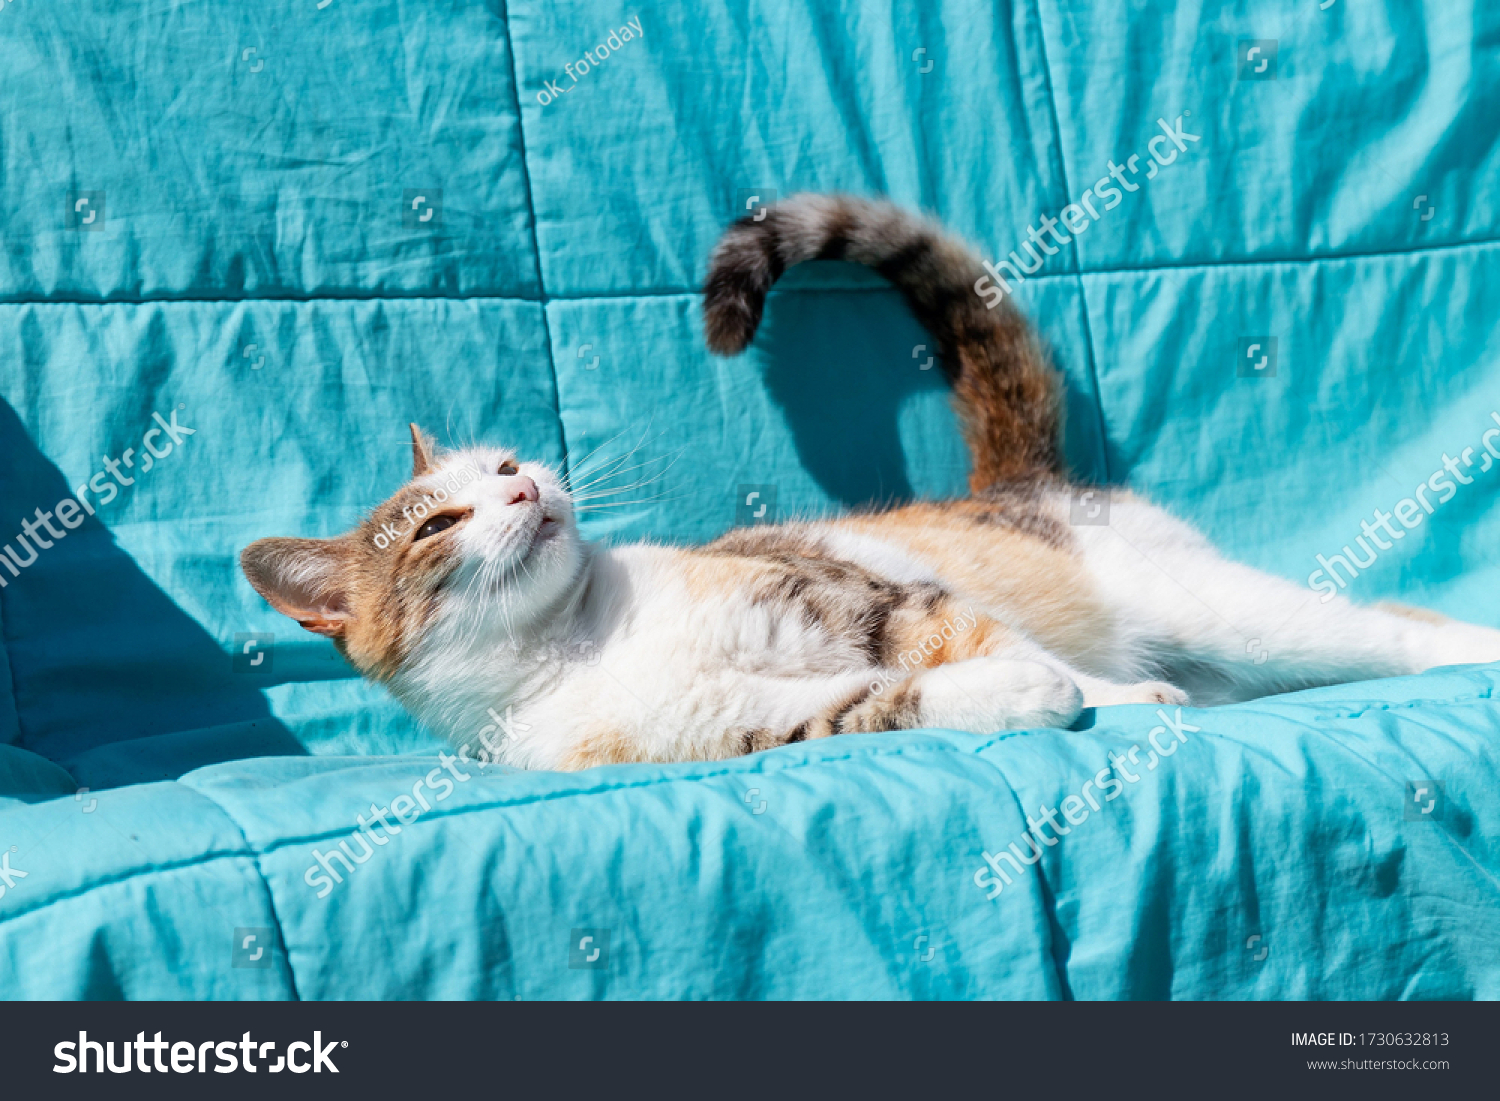 stock-photo-young-multicolor-cat-basking